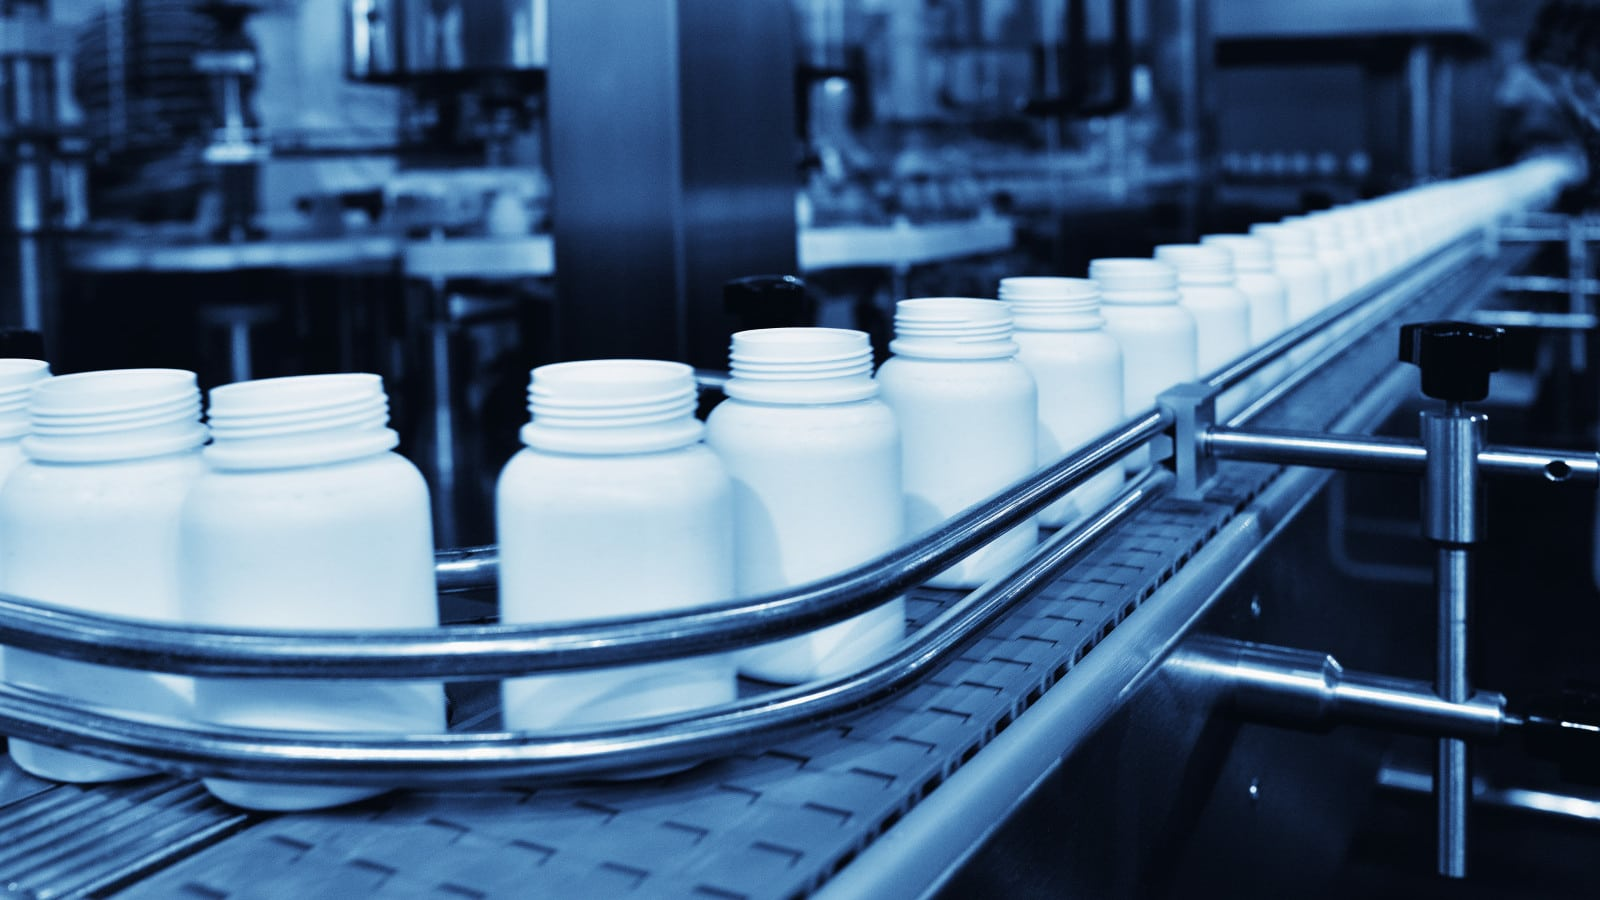 Medicine Bottles On Automated Assembly Line Stock Photo